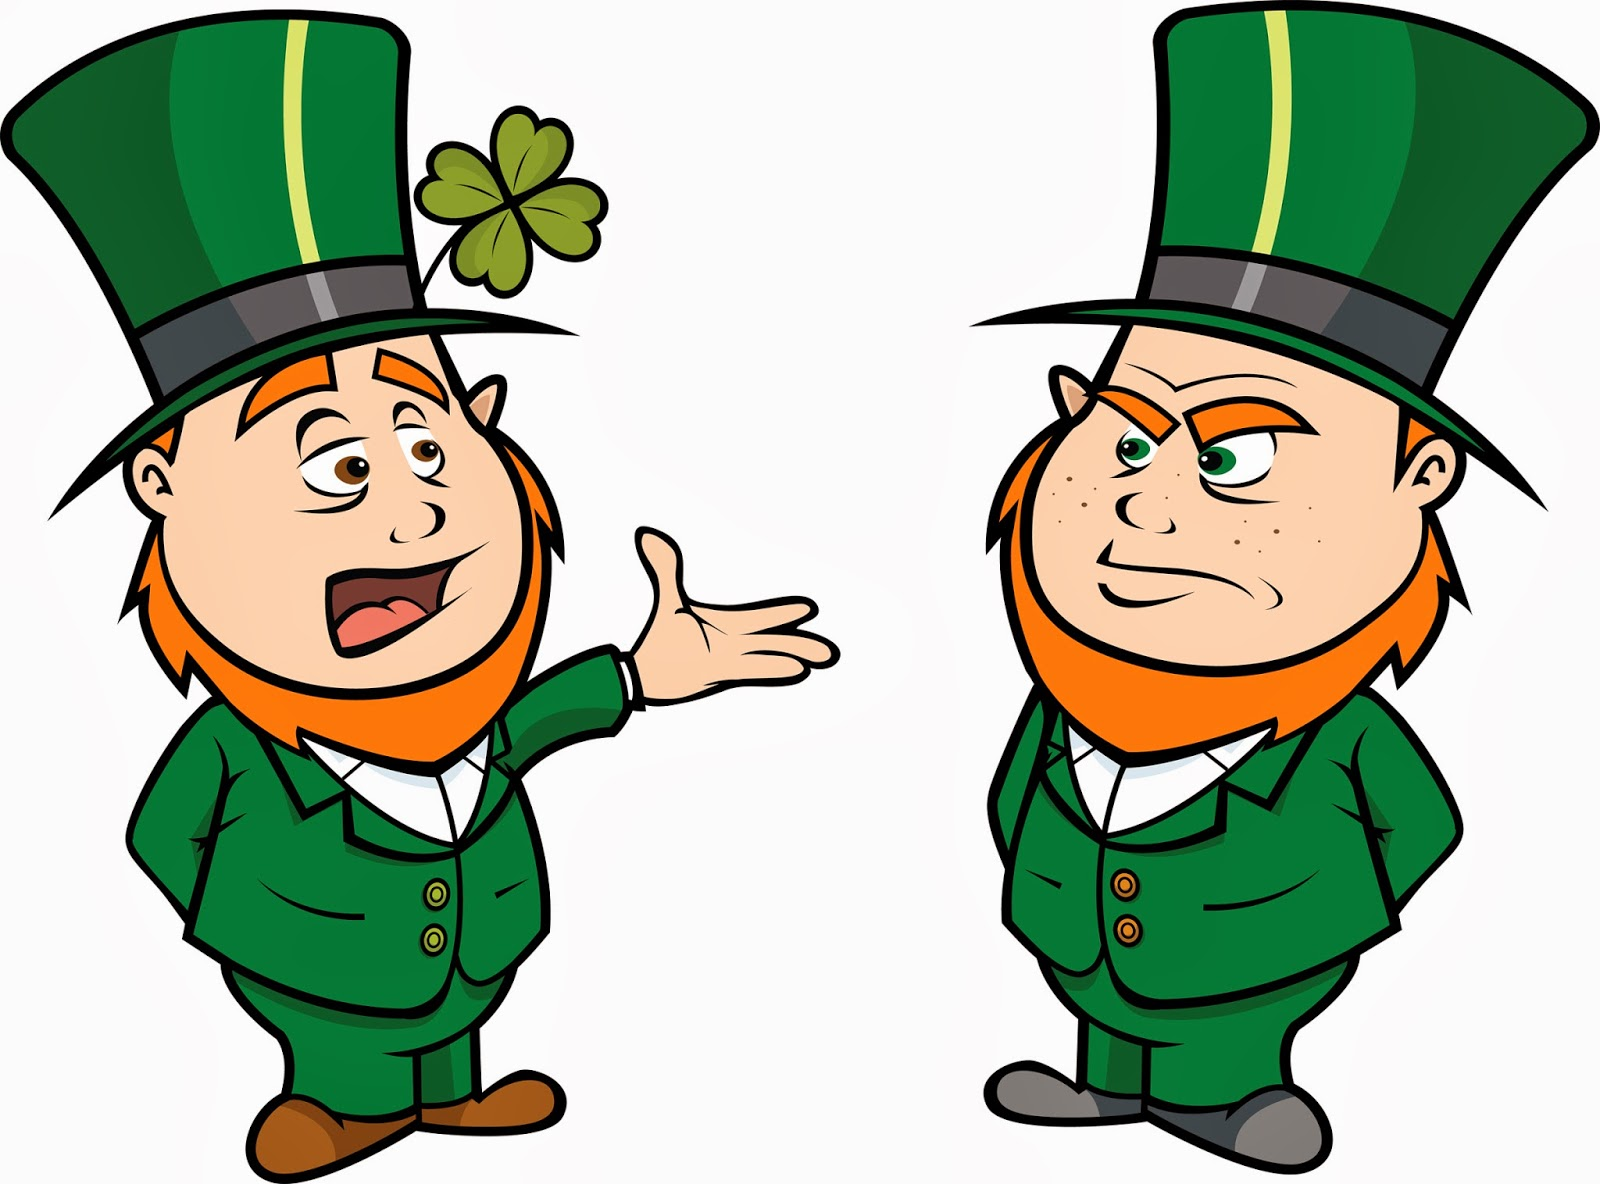 Uncategorized Leprechaun Myths common gunsense a blog to advocate for sensible gun legislation happy st patricks day and myths debunked